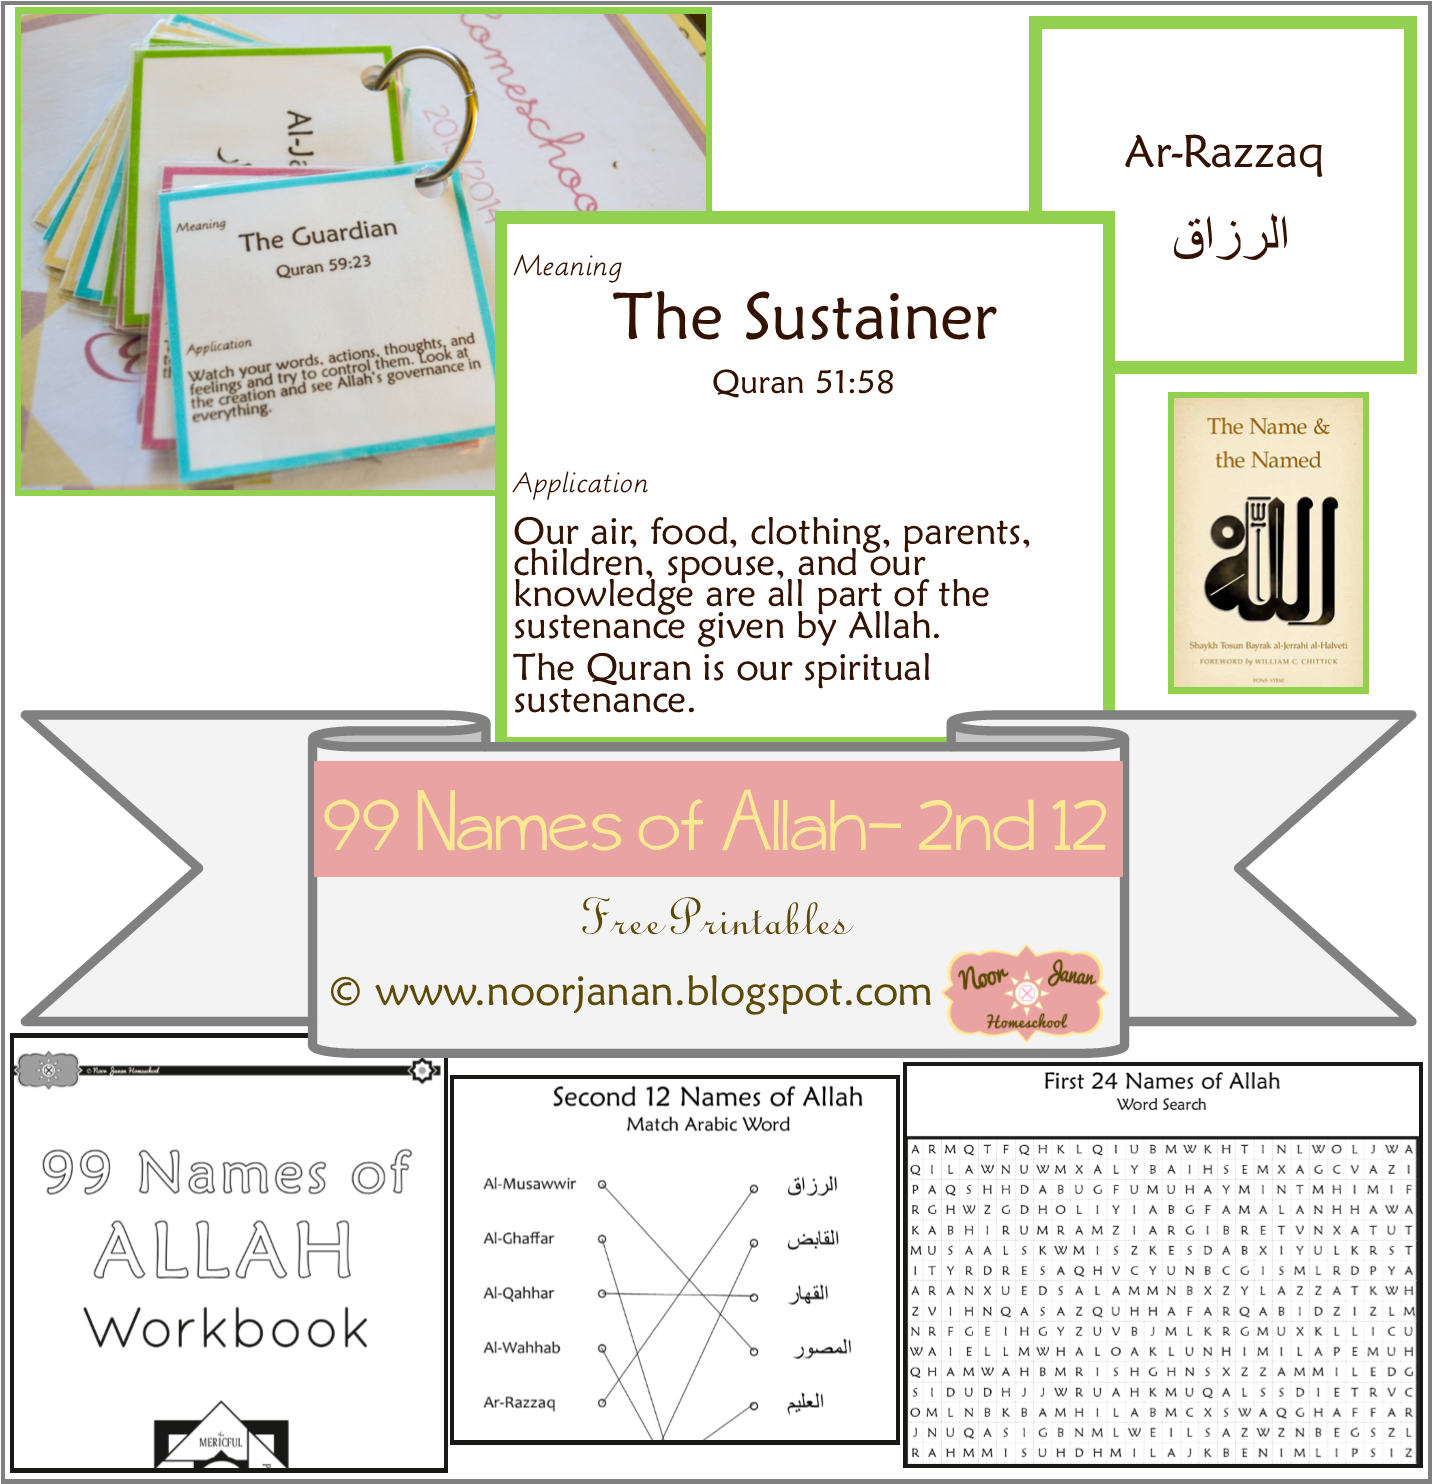 Noor Janan Homeschool: The Name and The Named- 2nd 12